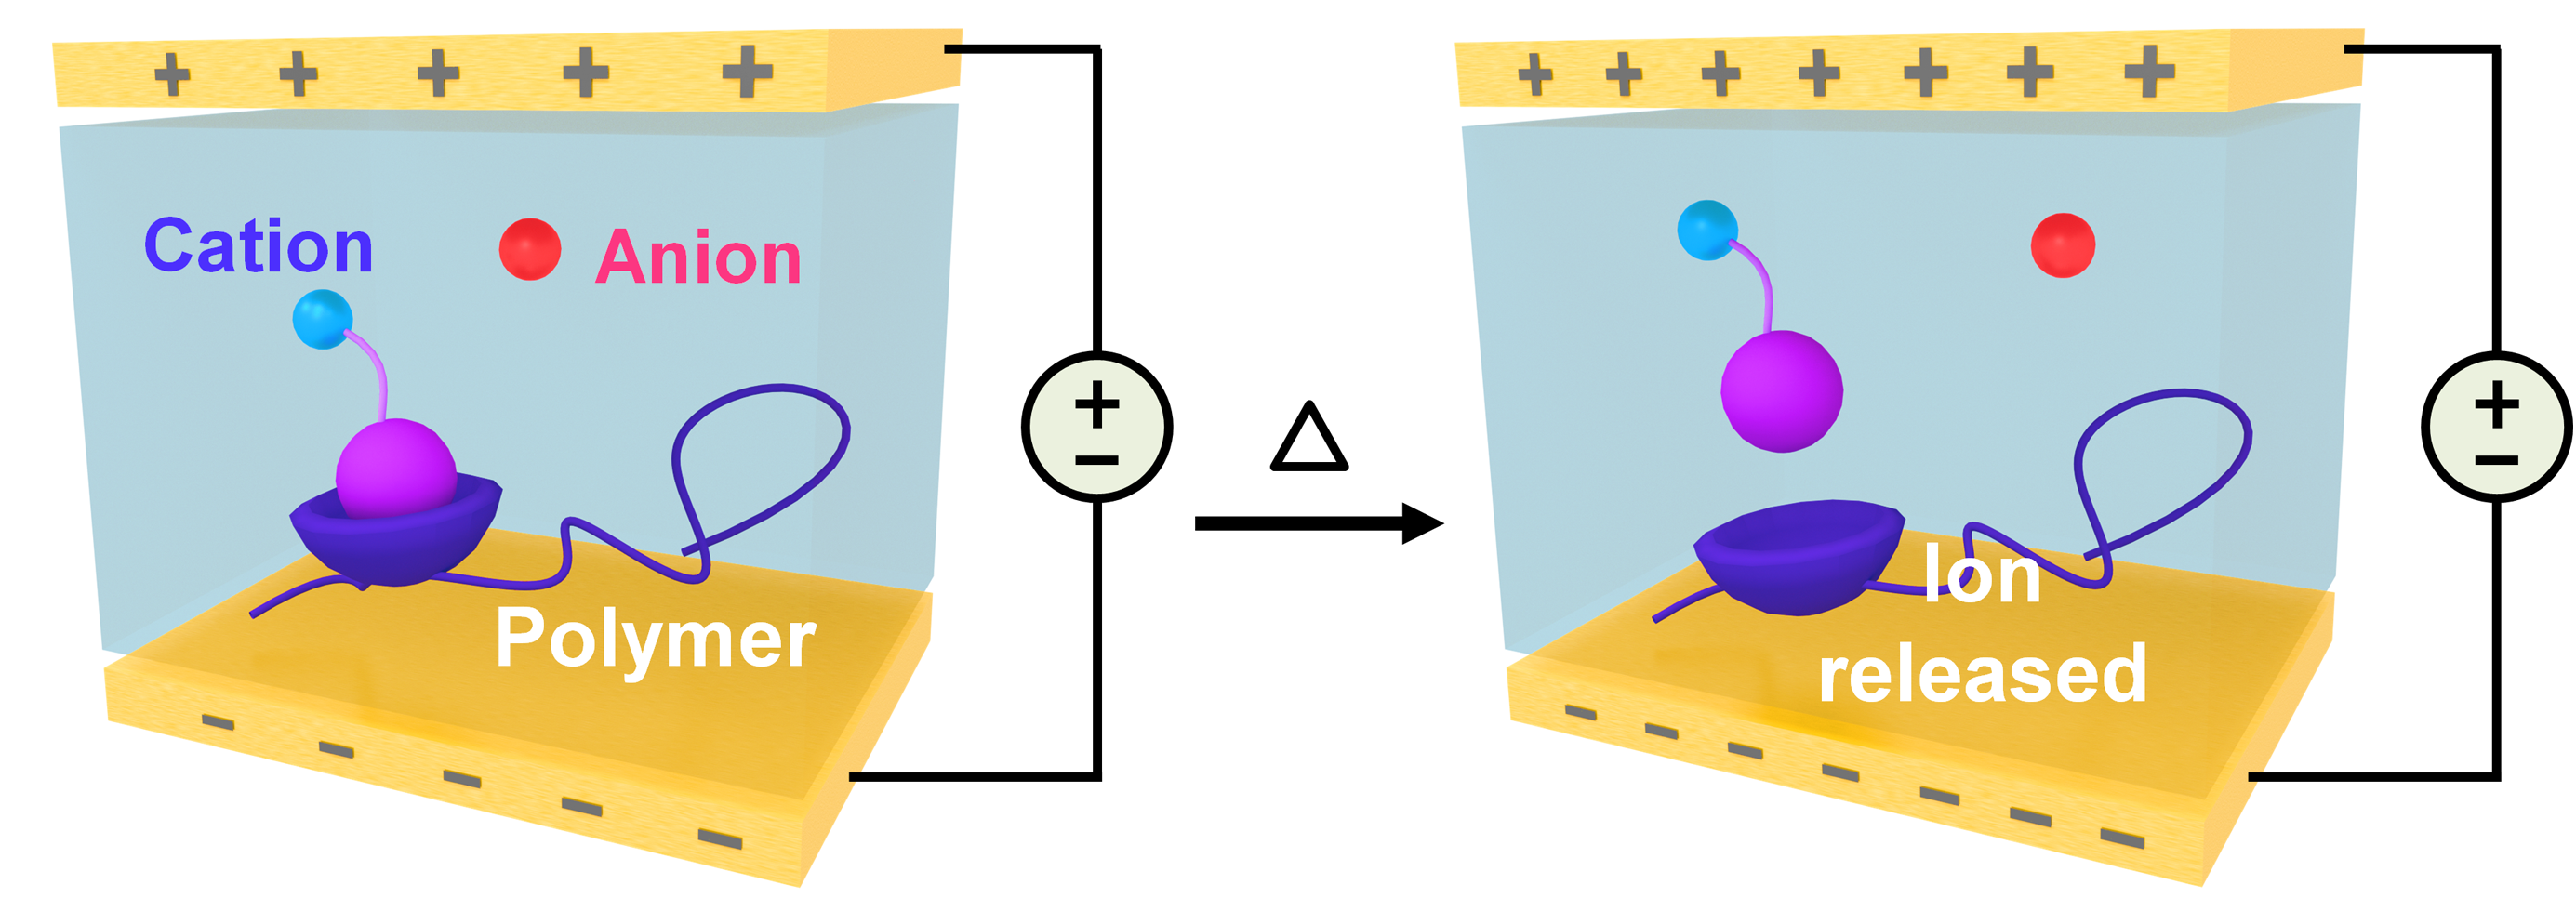 Triggerable Ion Release in Polymerized Ionic Liquids Containing Thermally-Labile Diels-Alder Linkages